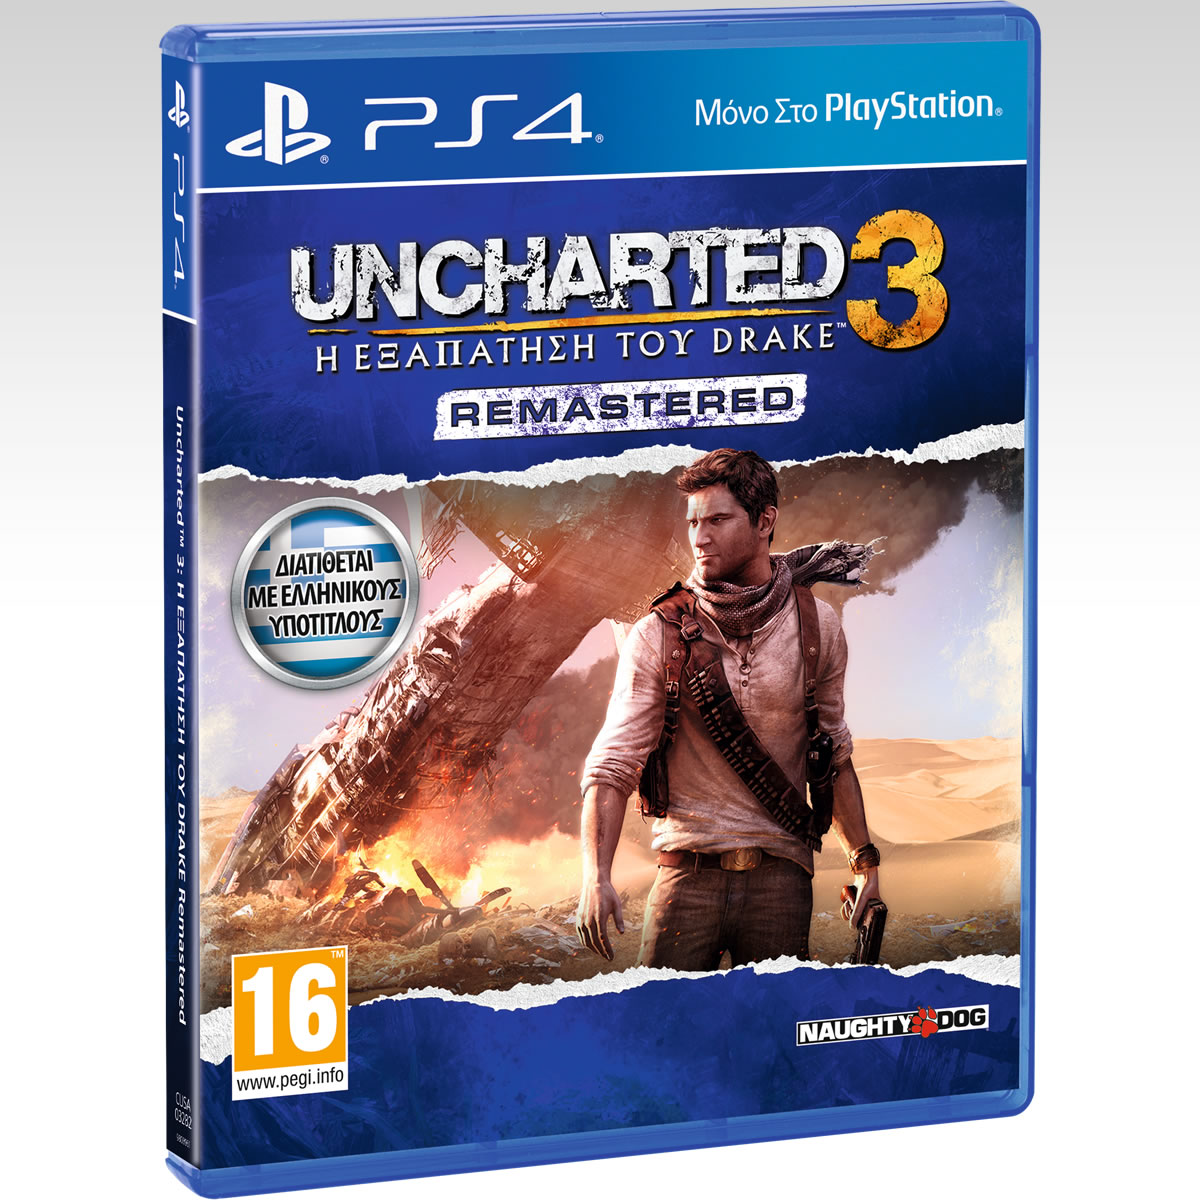 UNCHARTED 3: DRAKE'S DECEPTION - UNCHARTED 3: Η ΕΞΑΠΑΤΗΣΗ ΤΟΥ DRAKE Remastered [ΕΛΛΗΝΙΚΟ] (PS4)